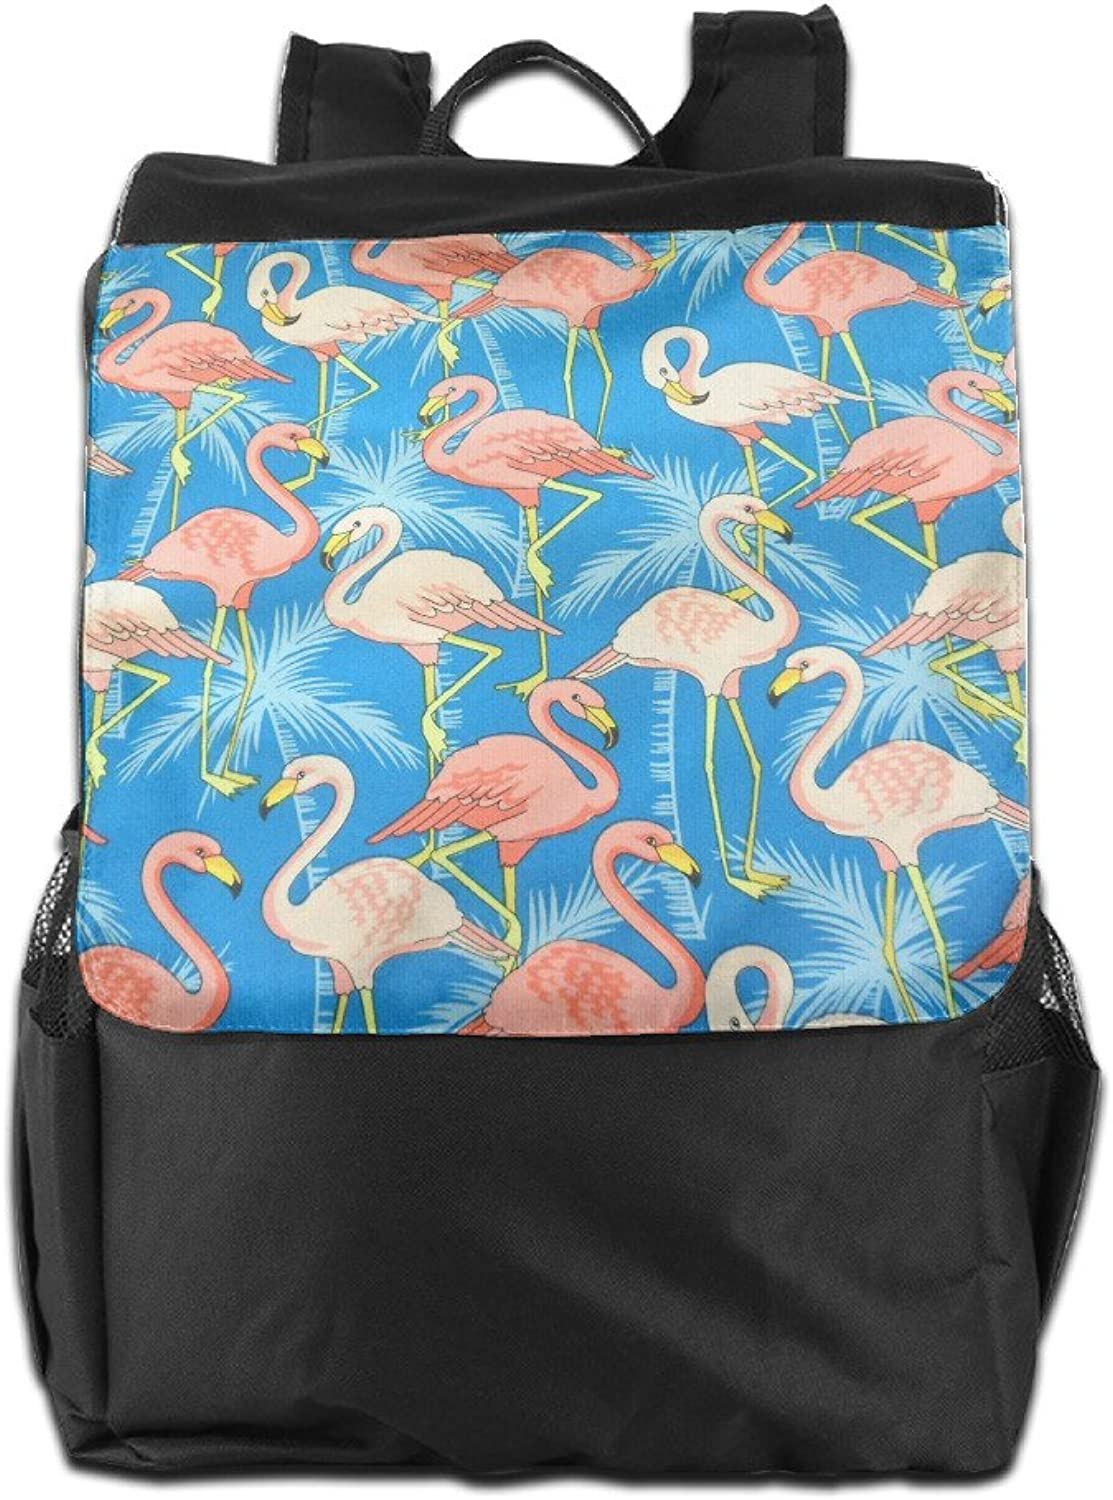 Pink Flamingo Palm Tree Outdoor Travel Hiking Backpack Daypacks Casual Camping Climbing Shoulders Bag Unisex